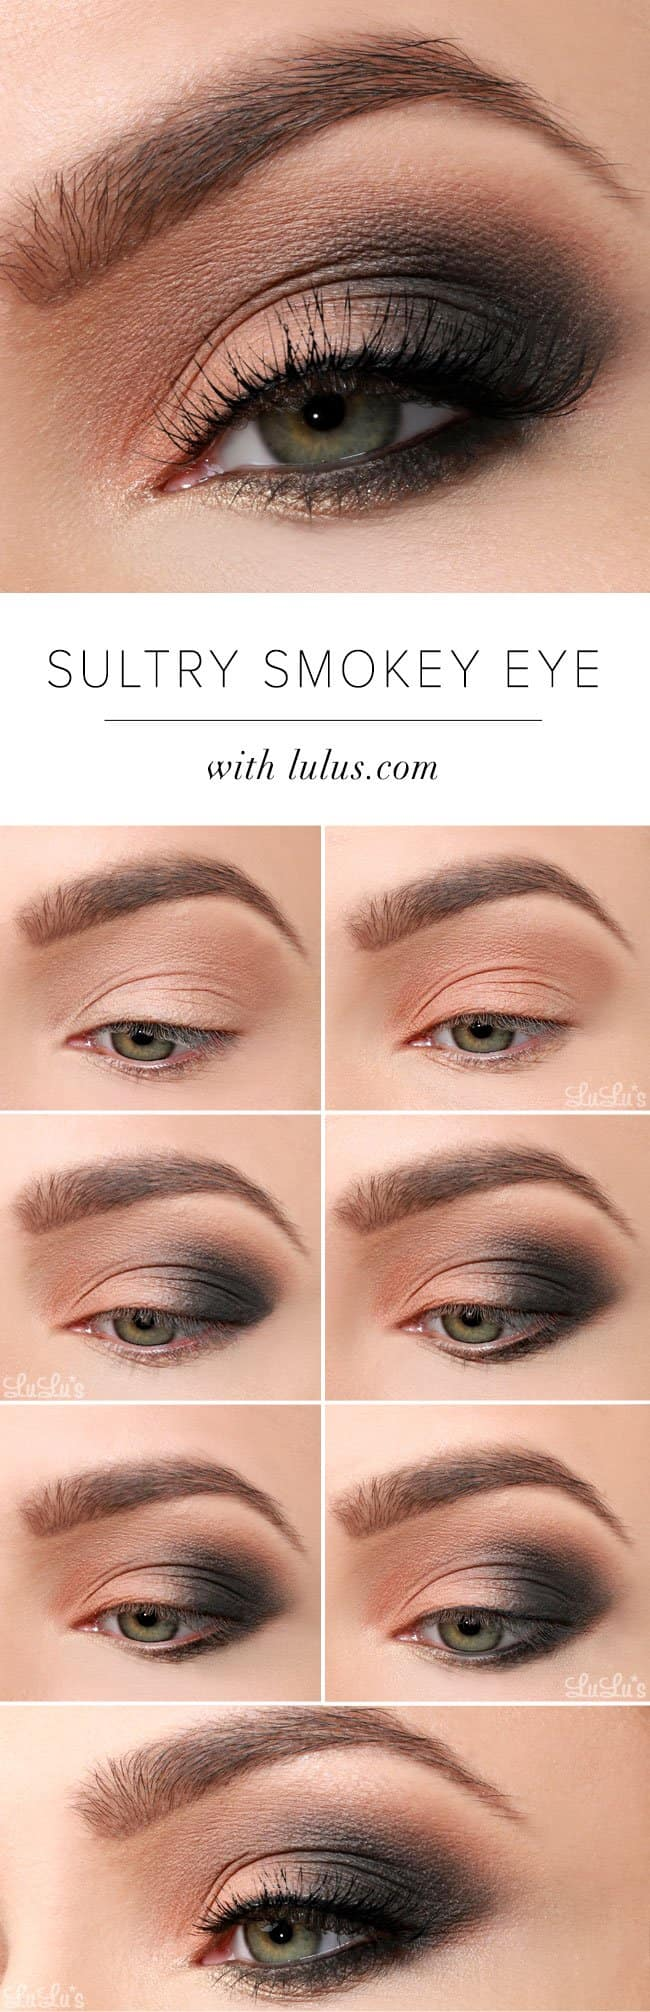 Smokey Eyes Makeup 15 Smokey Eye Tutorials Step By Step Guide To Perfect Hollywood